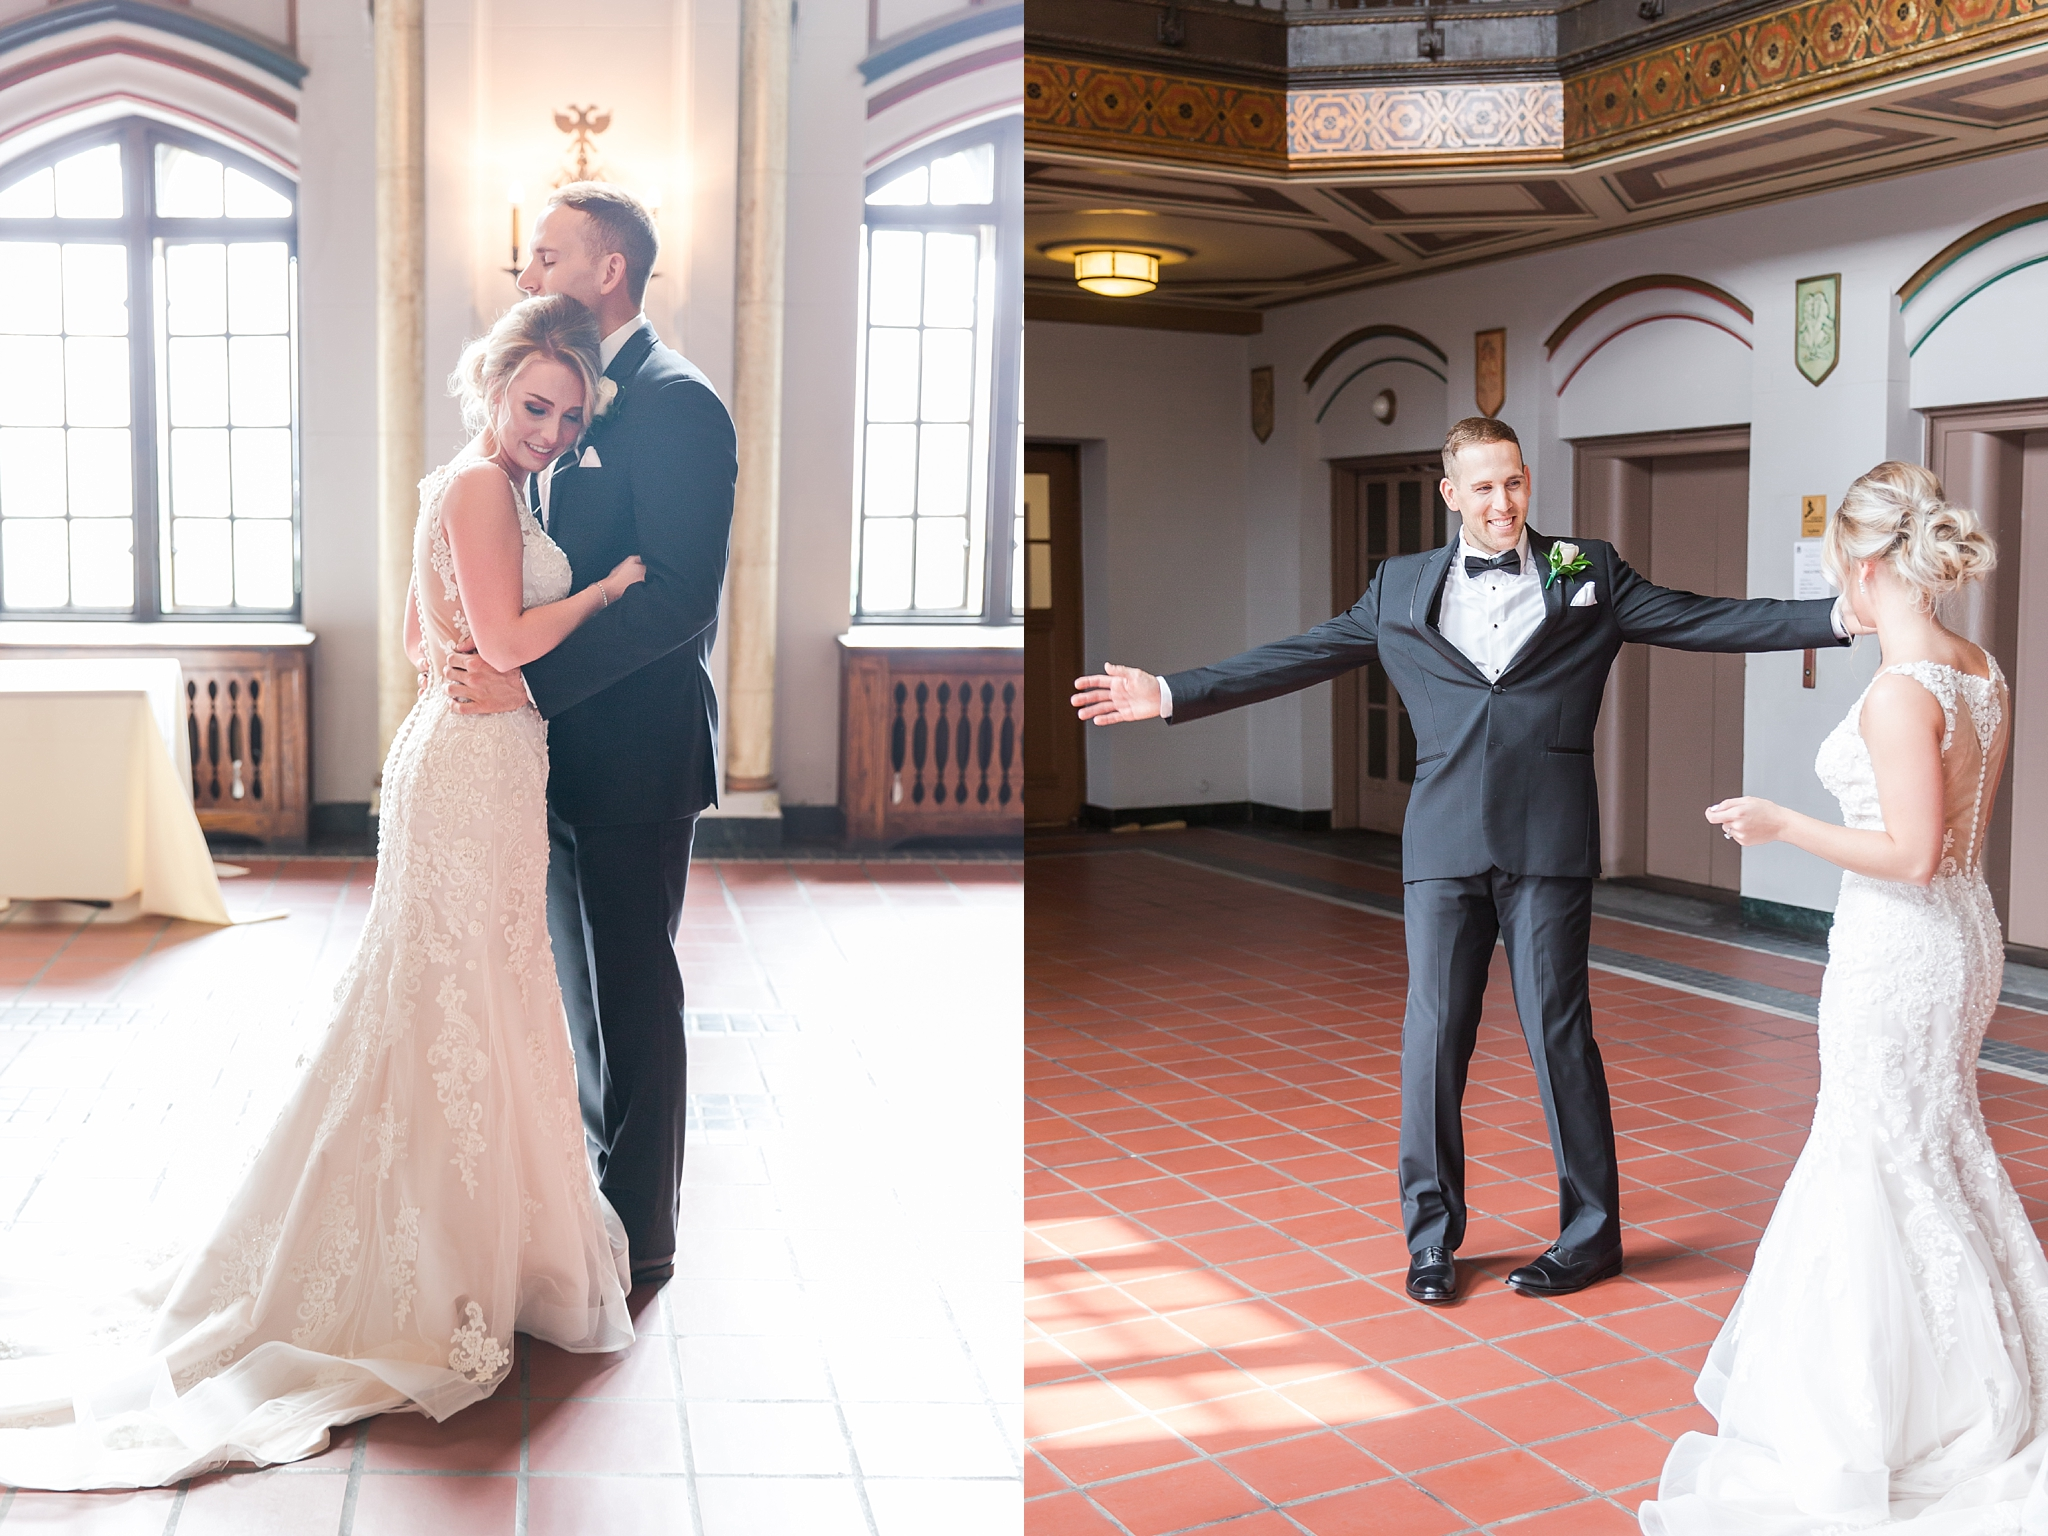 candid-romantic-wedding-photos-at-the-masonic-temple-belle-isle-detroit-institute-of-arts-in-detroit-michigan-by-courtney-carolyn-photography_0024.jpg